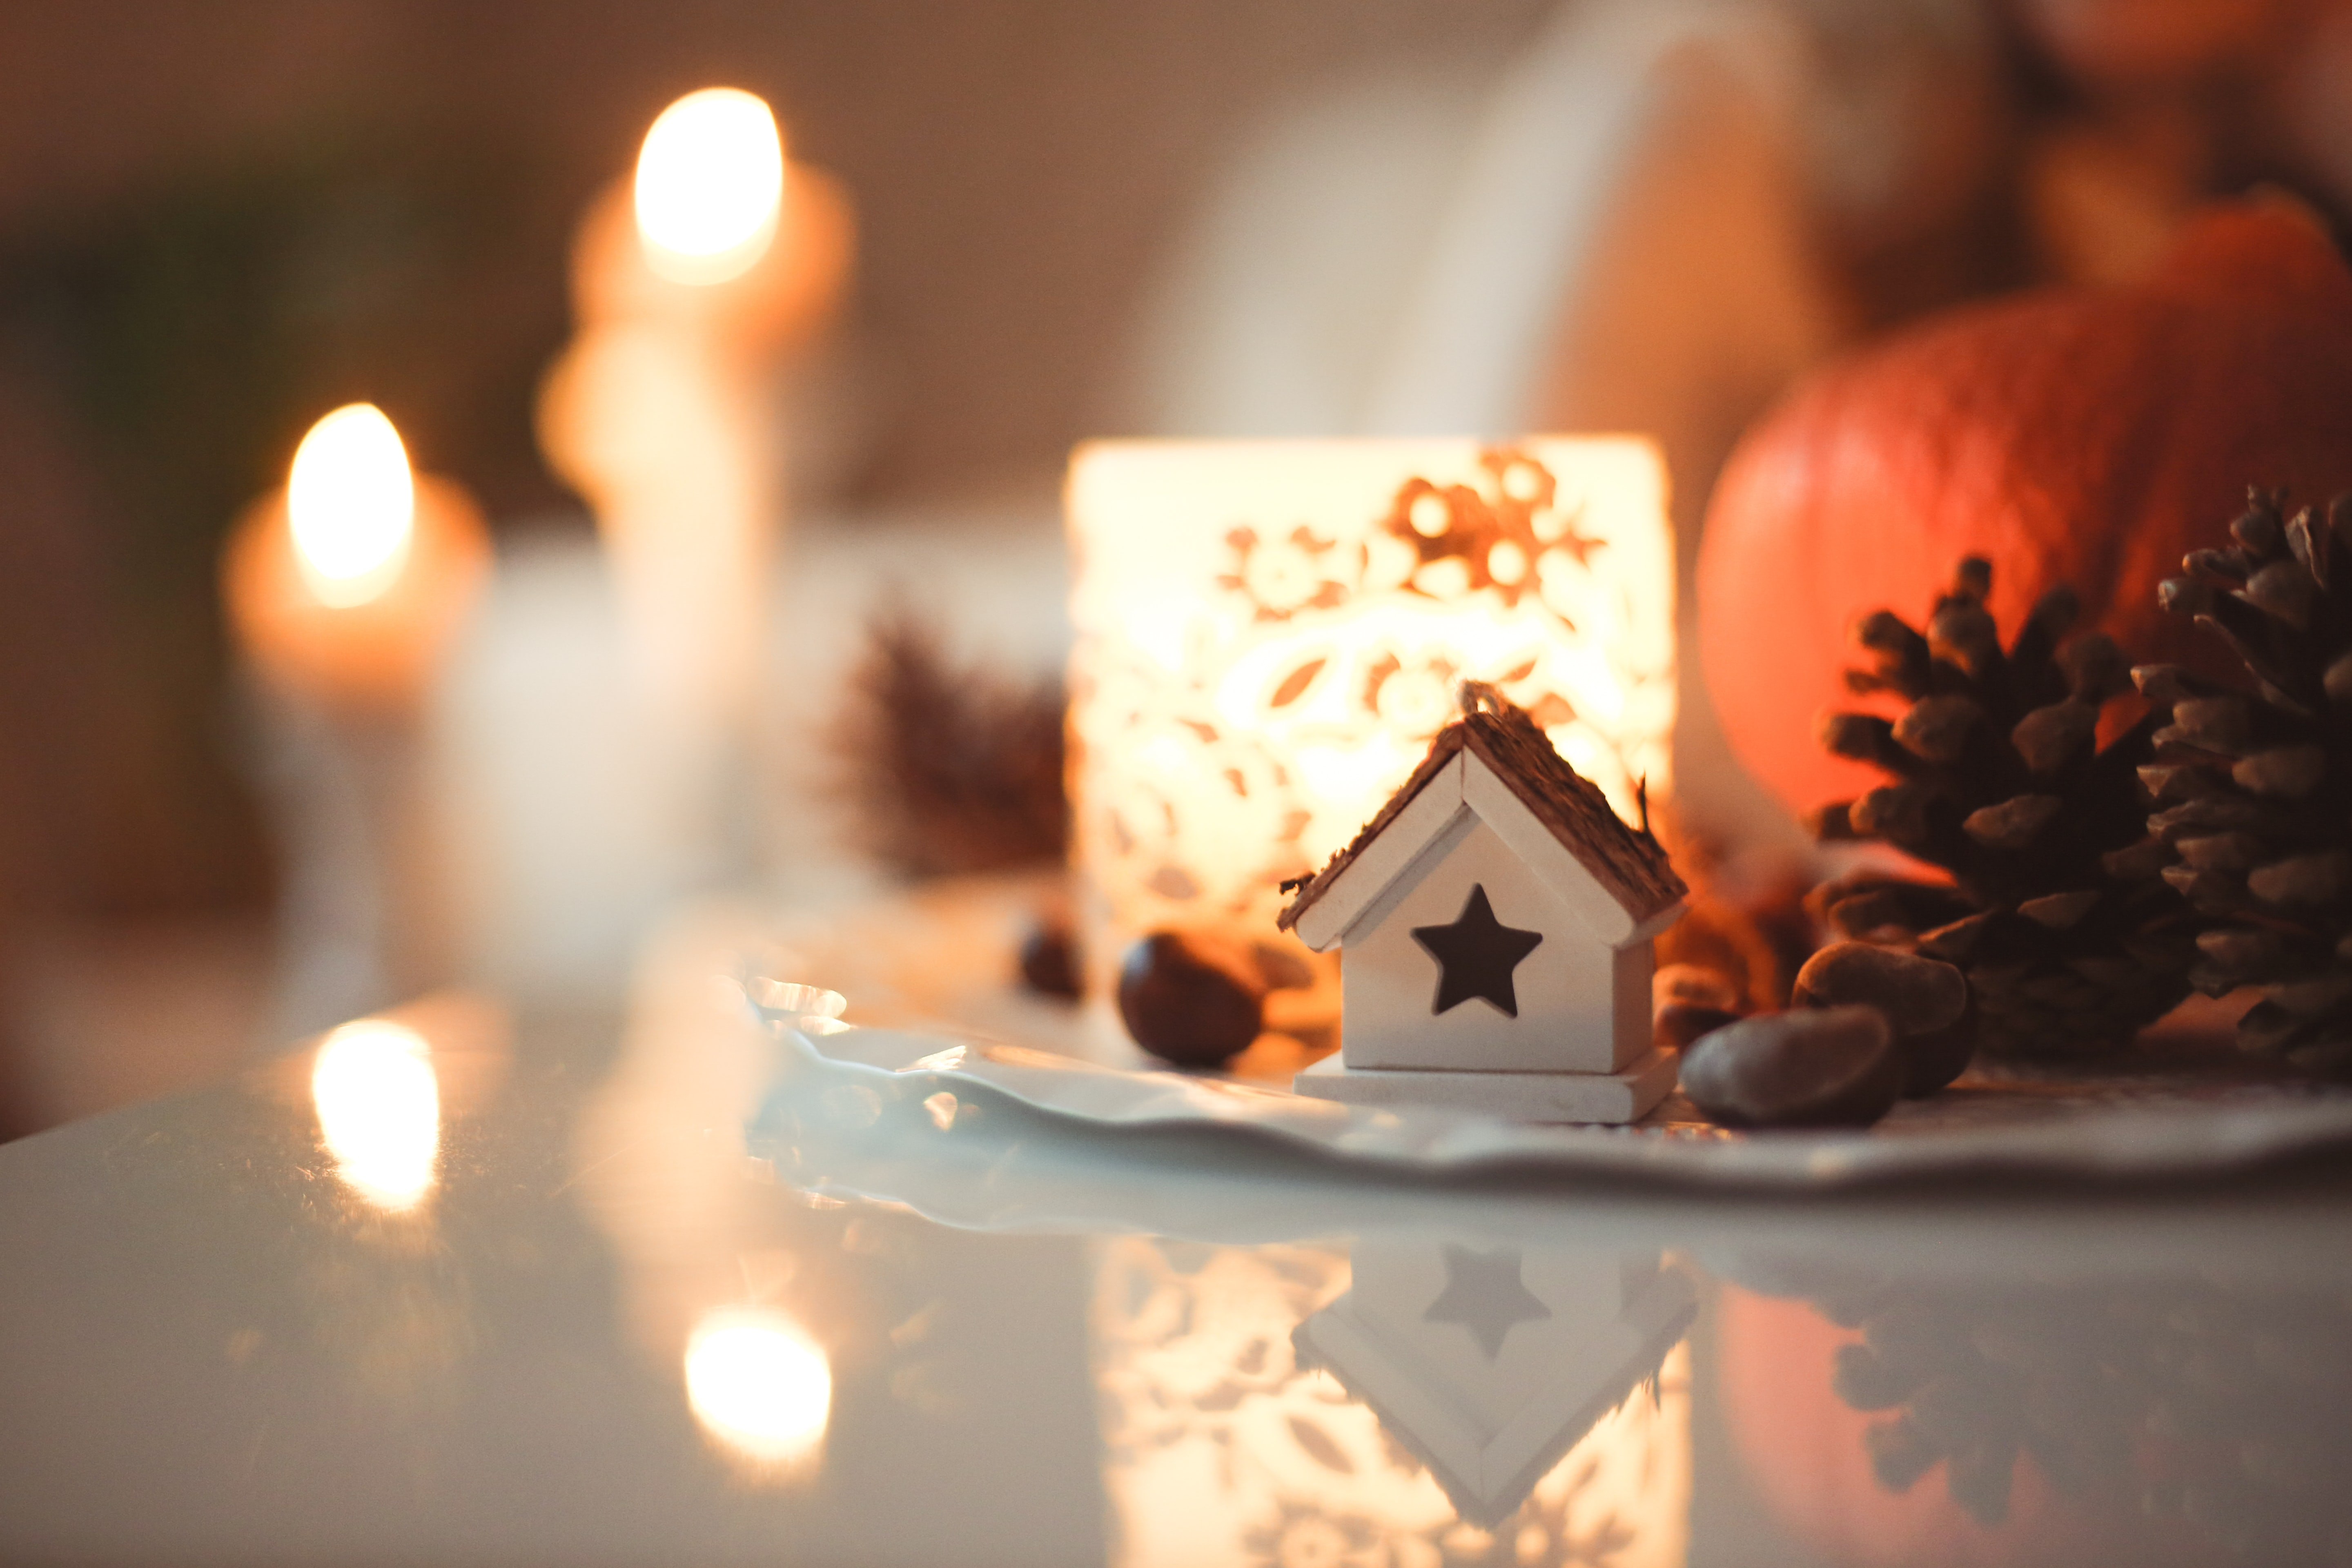 A macro view of a festive Christmas ornament on a table with candles blurrily lit in the background.